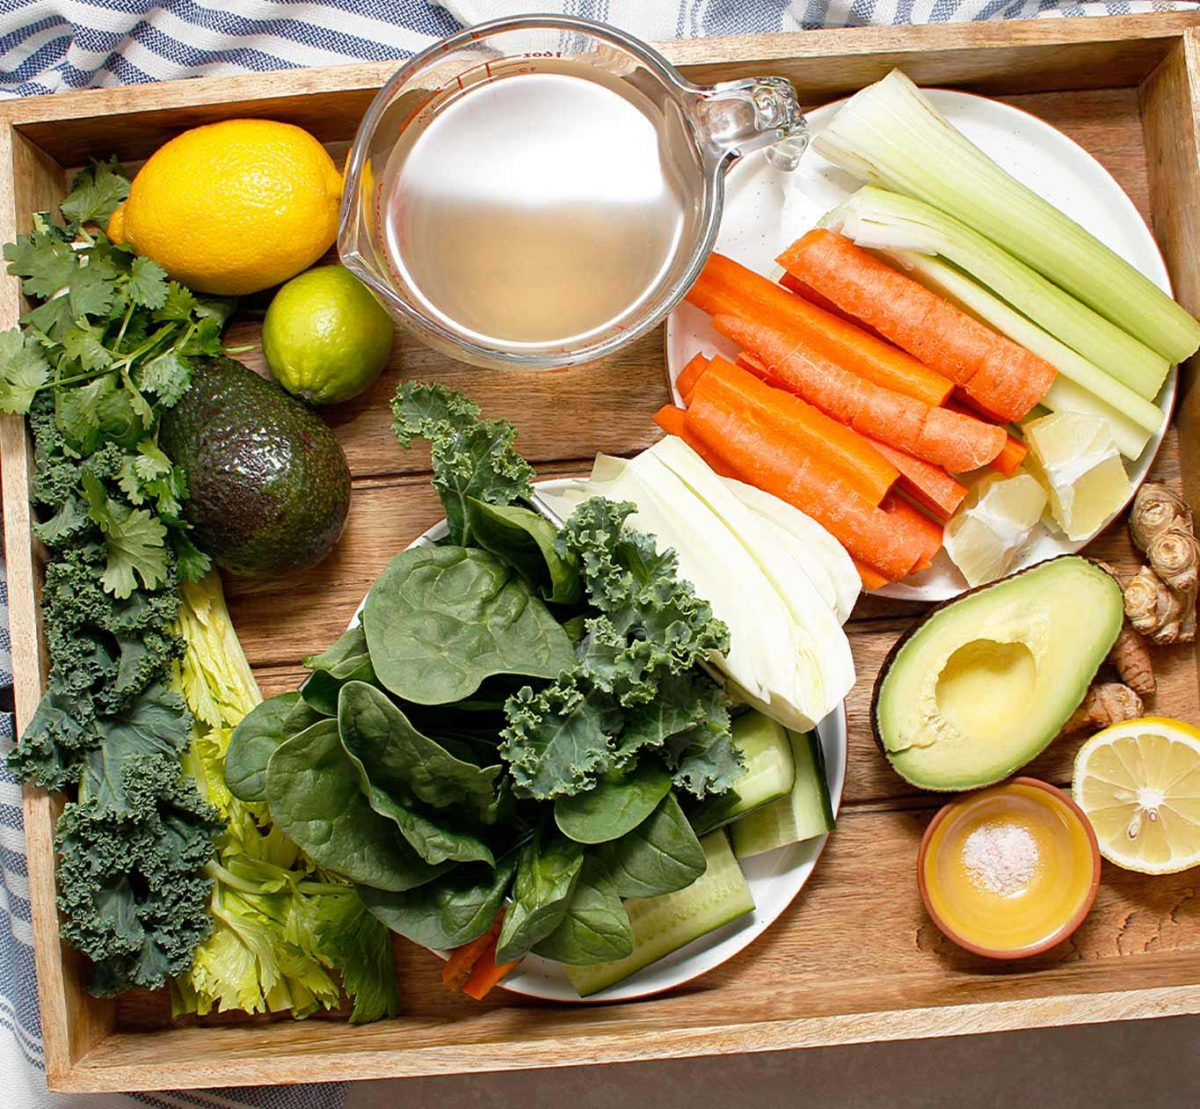 Tray of vegetables and fruit to make the best green juice!